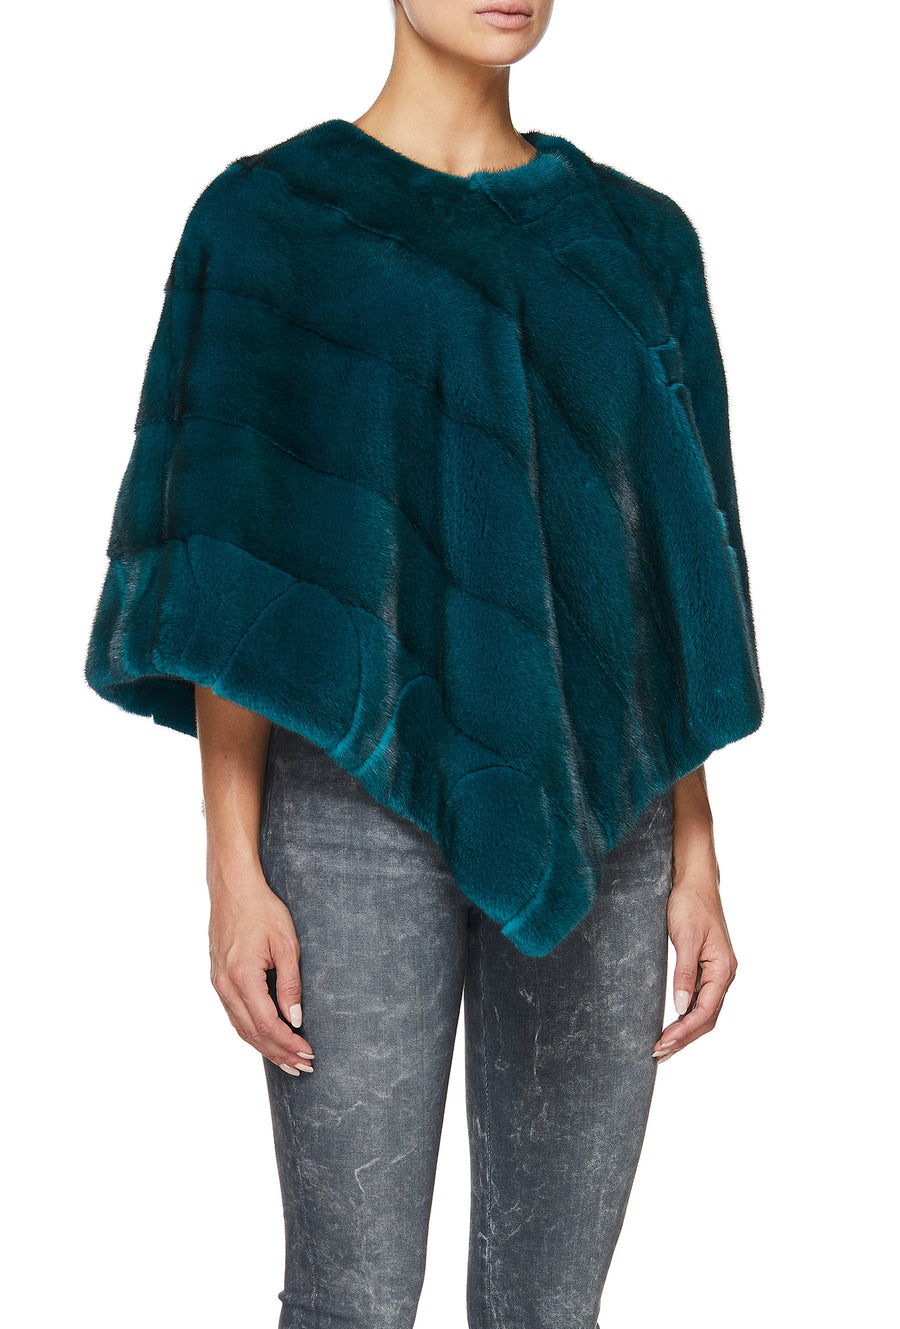 BLISS PONCHO IN TEAL